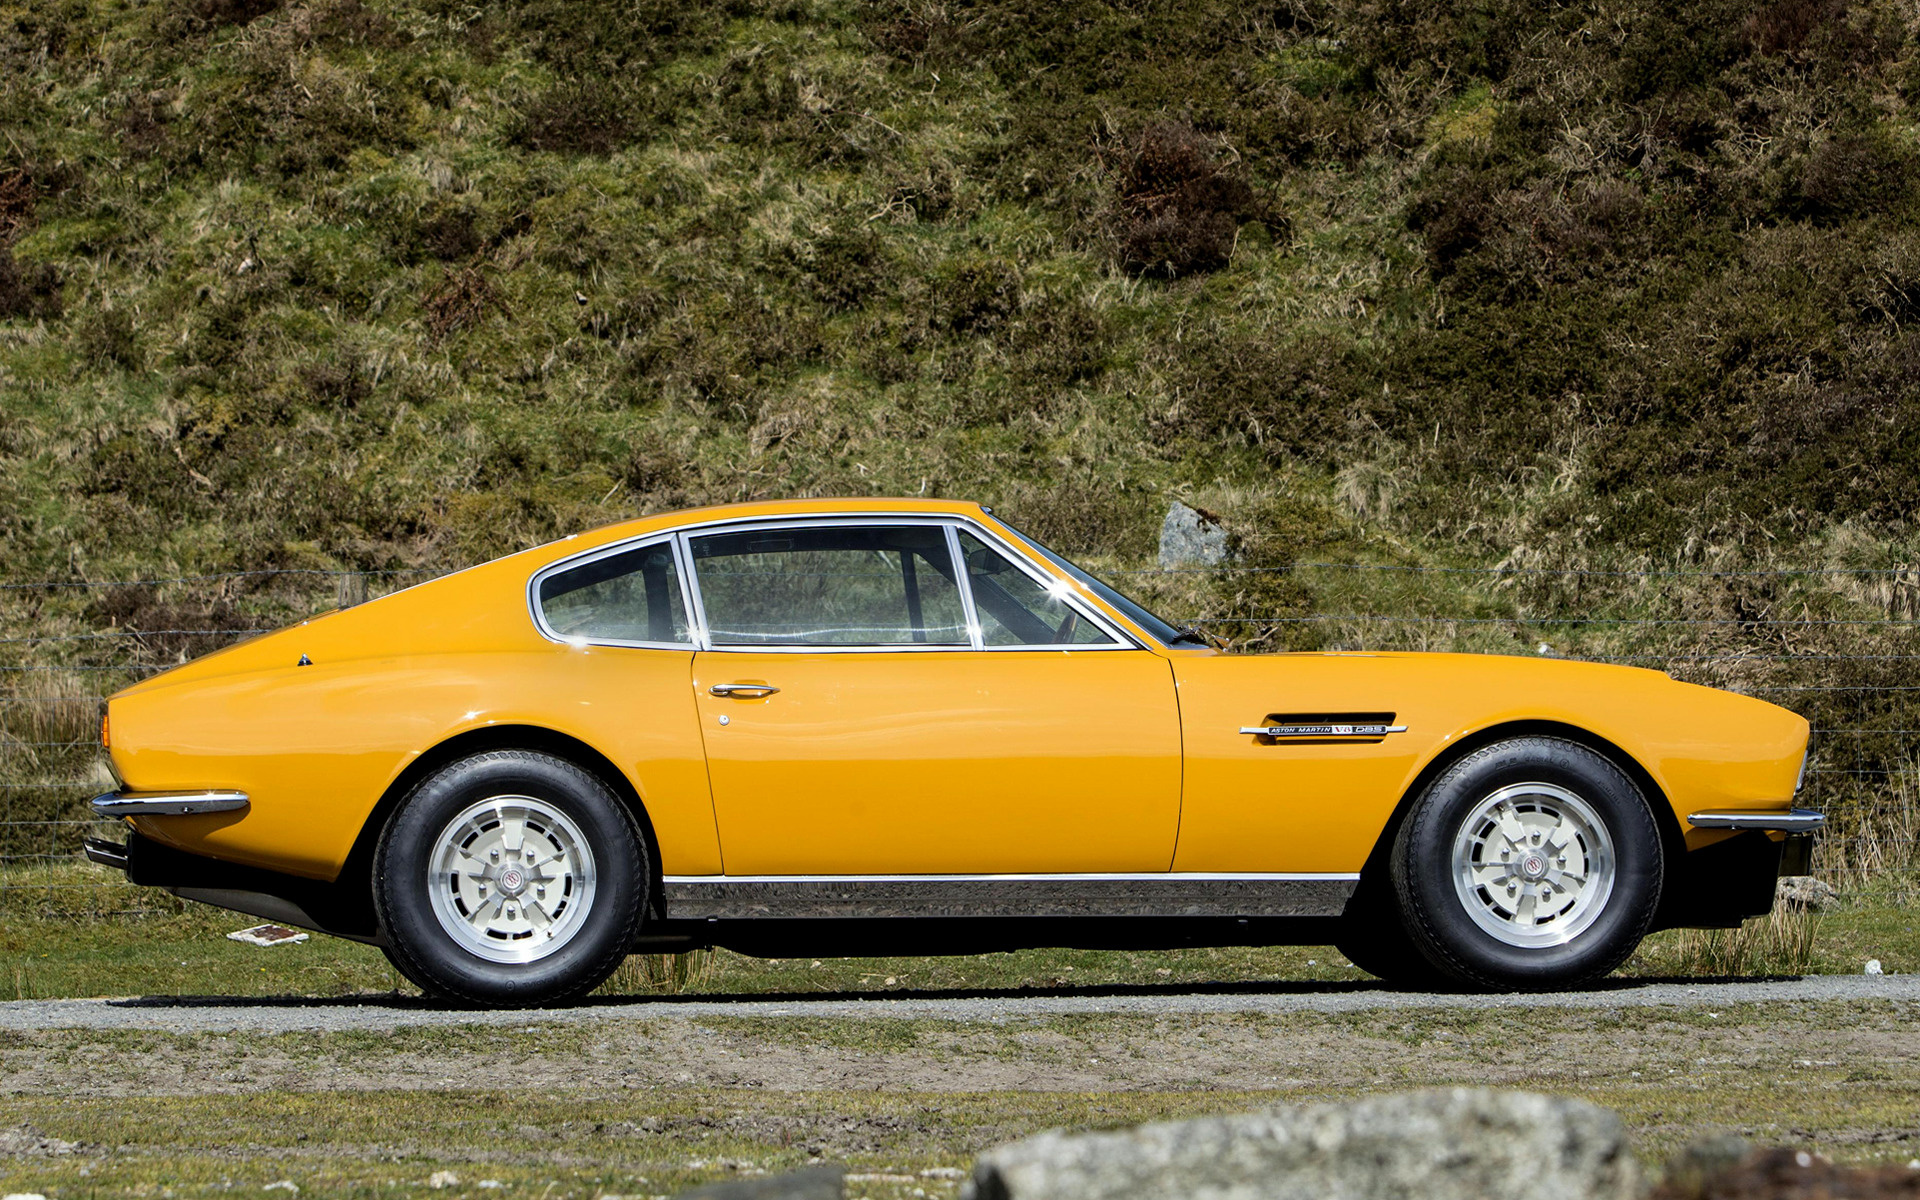 Aston Martin Vantage >> 1970 Aston Martin DBS The Persuaders! - Wallpapers and HD ...